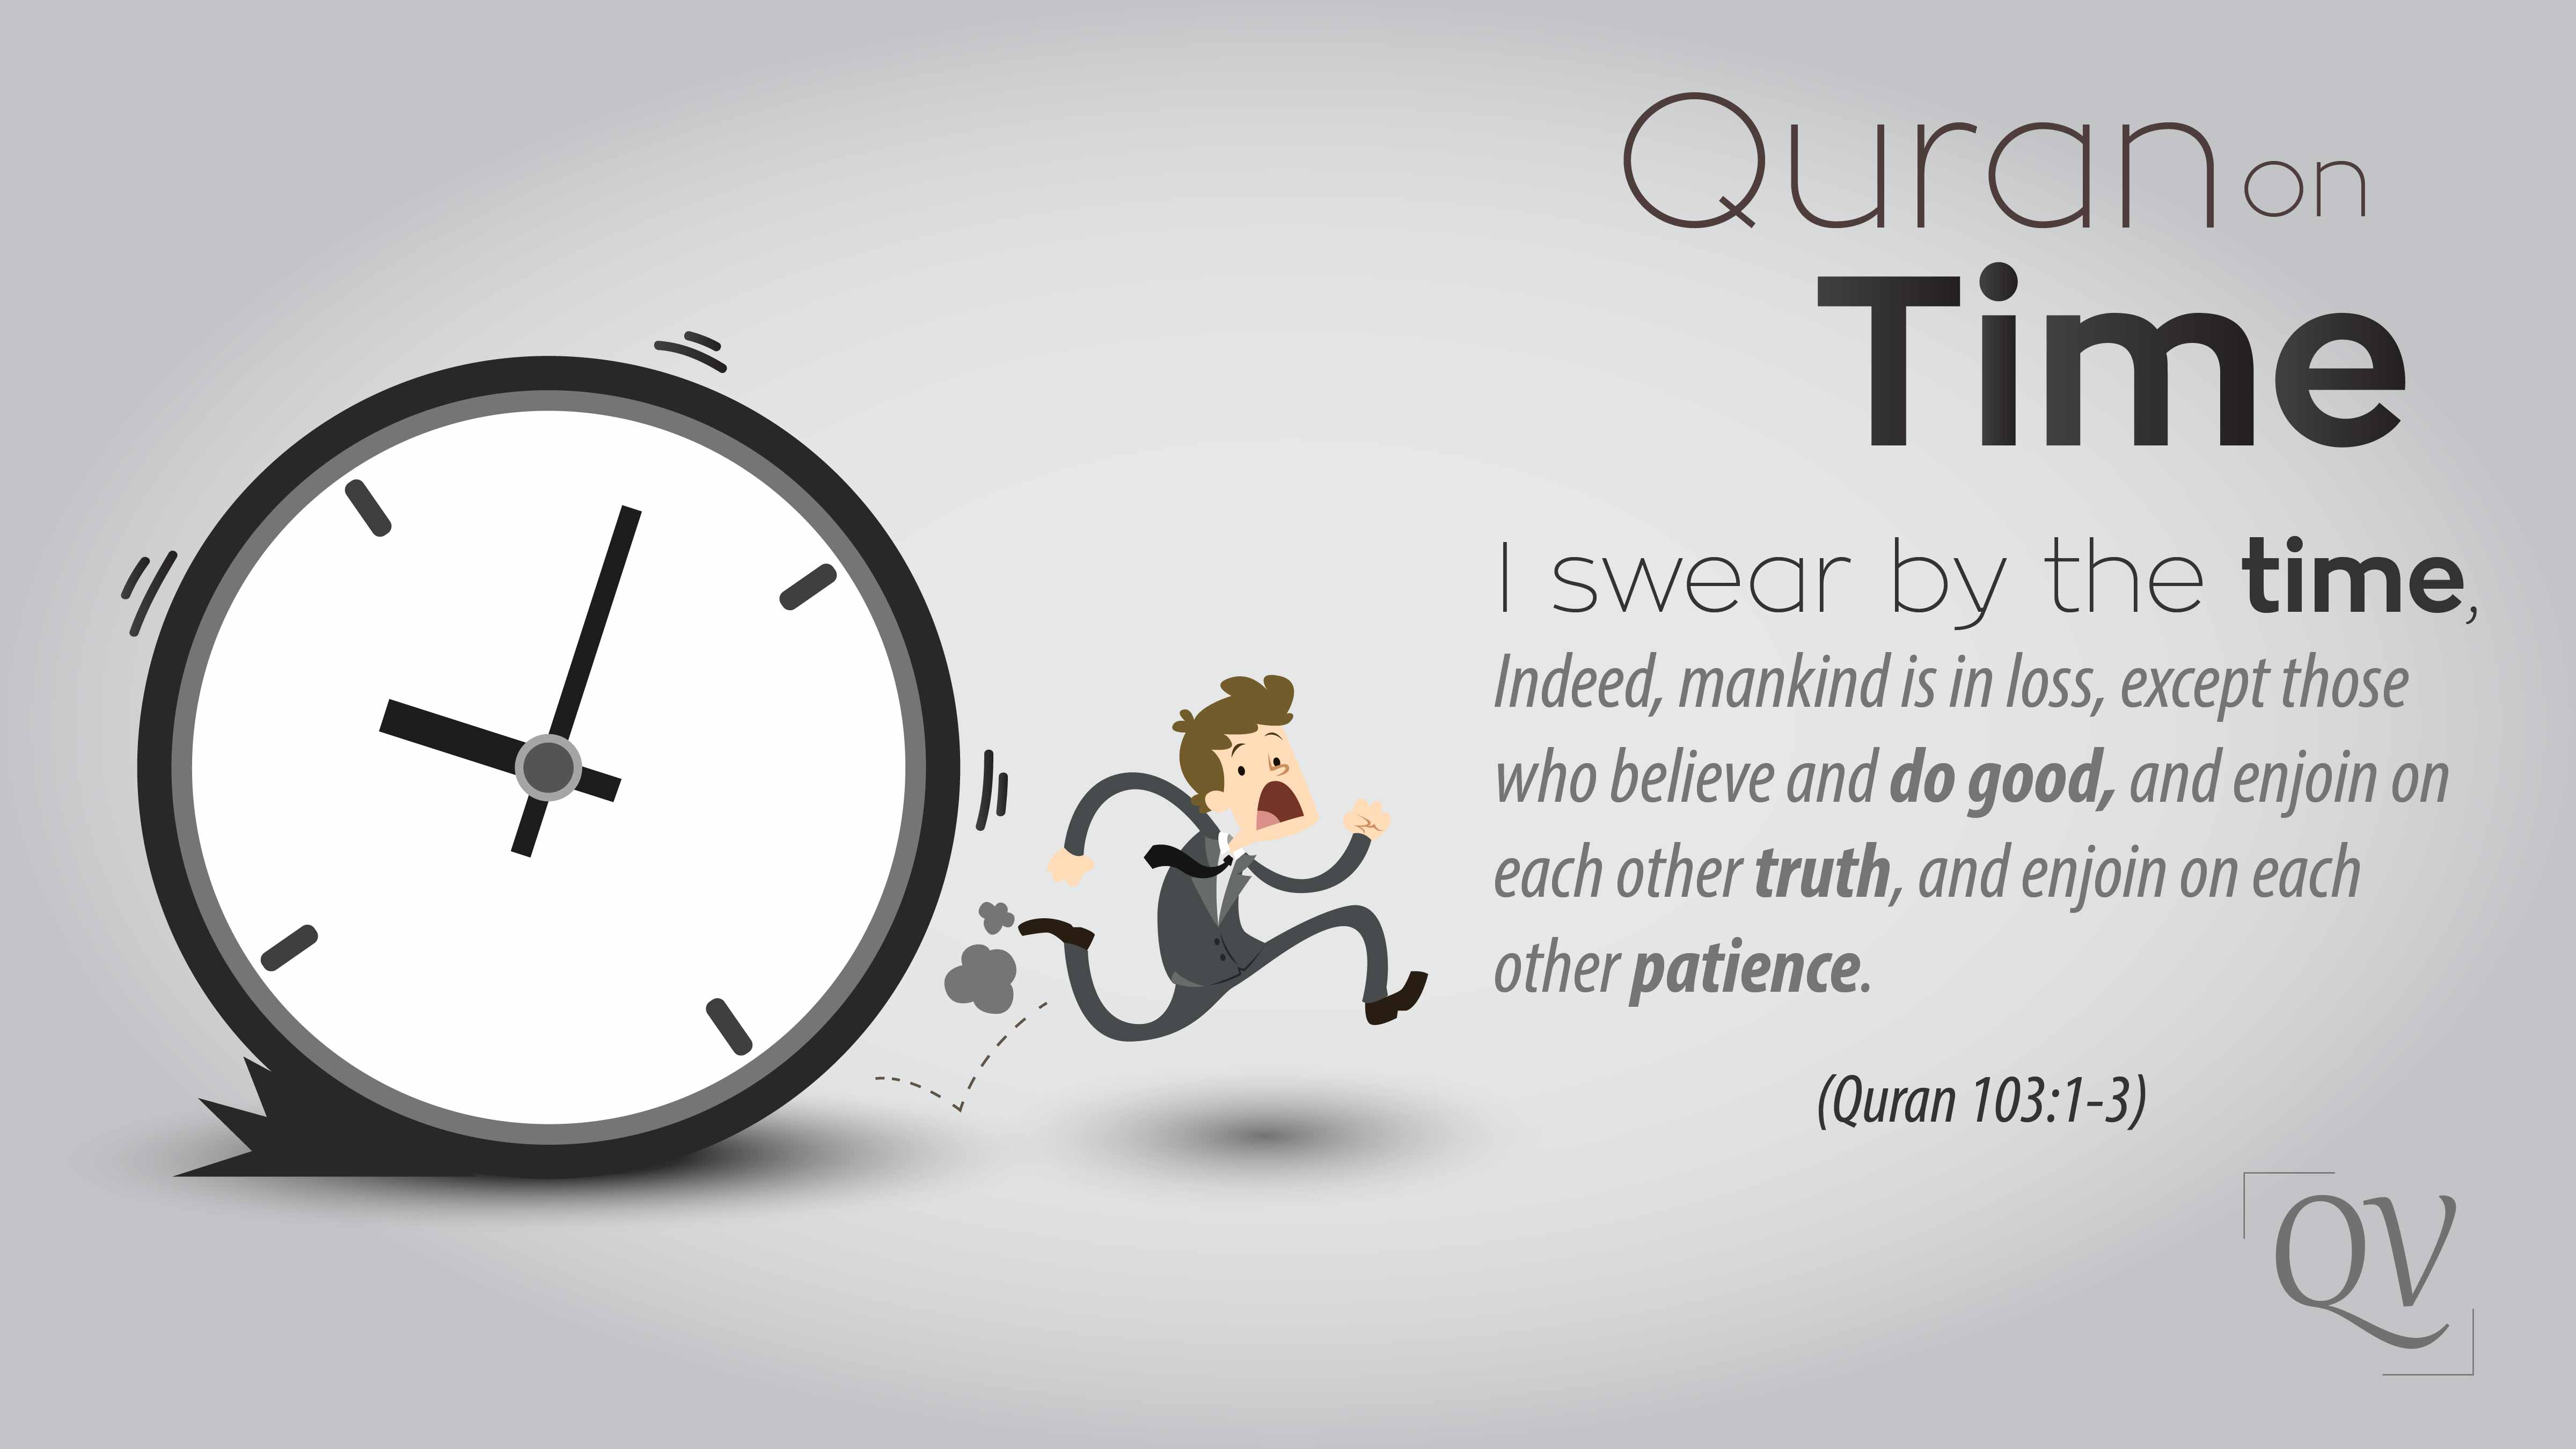 What does the quran say about patience